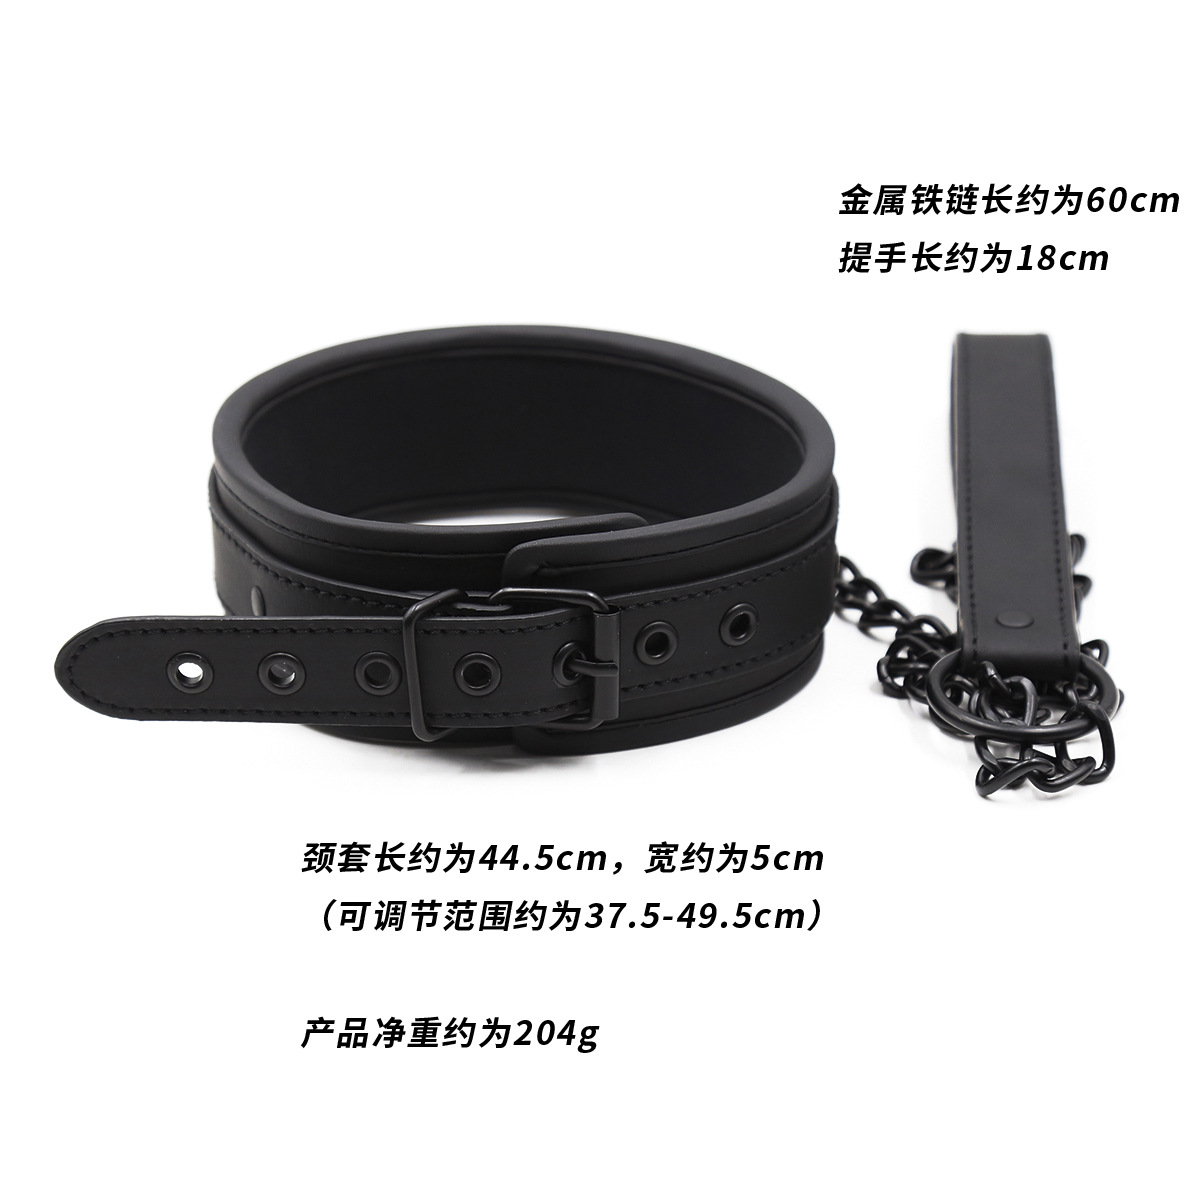 New Sponge Edging Sexy Leather BDSM Collar - Stomata all Black Pin Buckle Neck Set with Traction Chain, Bondage Gear & Accessories for Erotic Roleplay Games, Adult Sex Toys for Couples